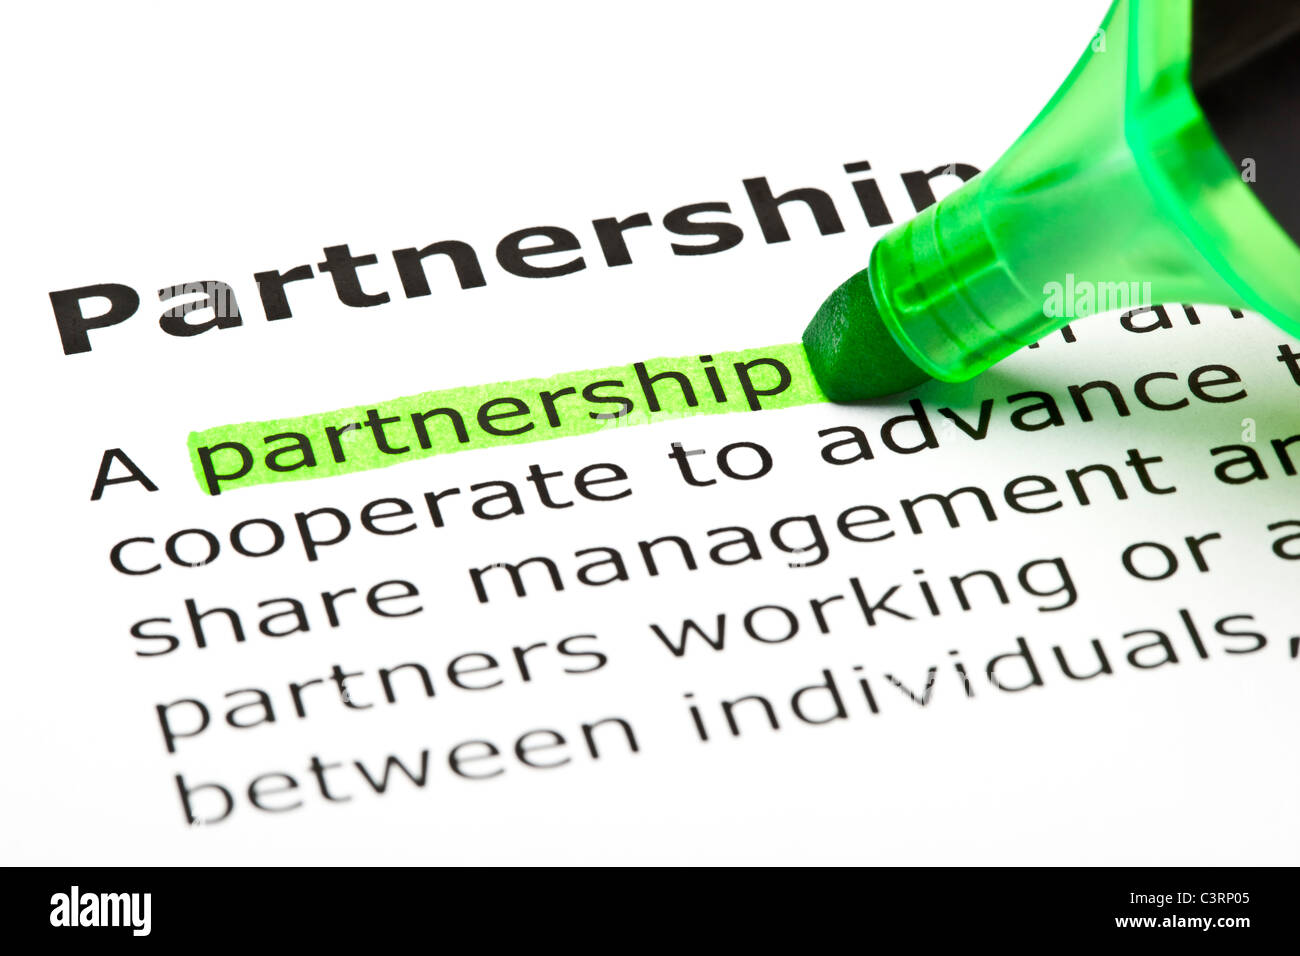 The word 'Partnership' highlighted in green with felt tip pen - Stock Image